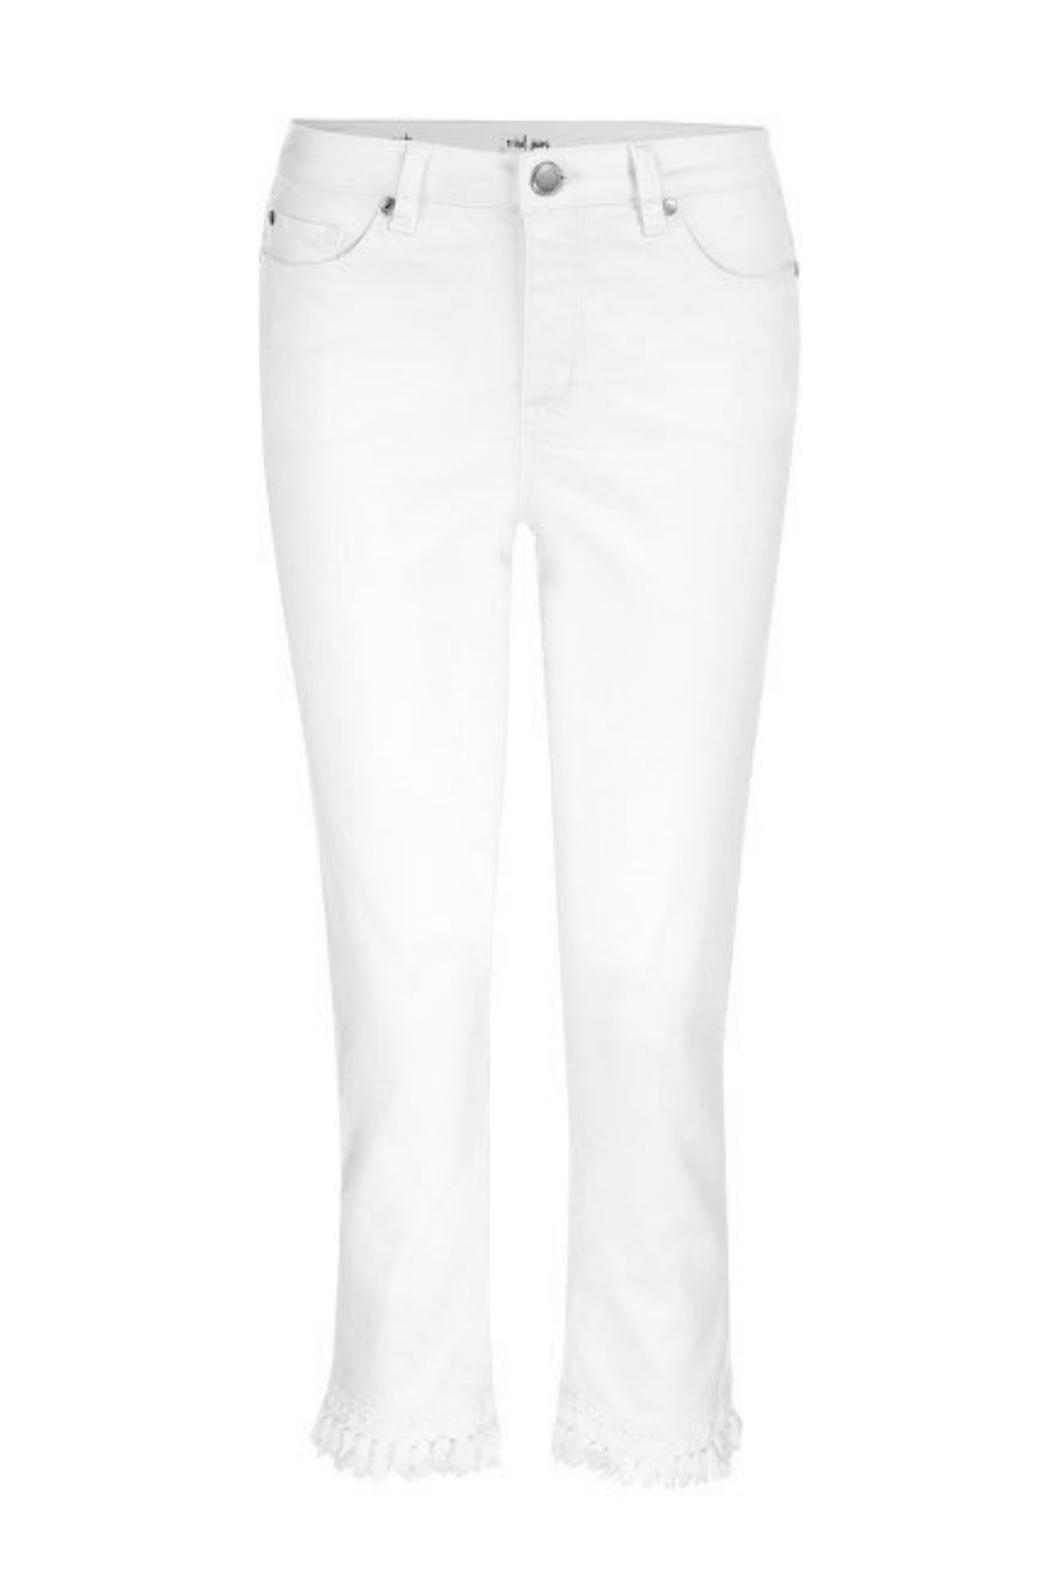 Tribal Jeans White Cropped Jean - Front Full Image